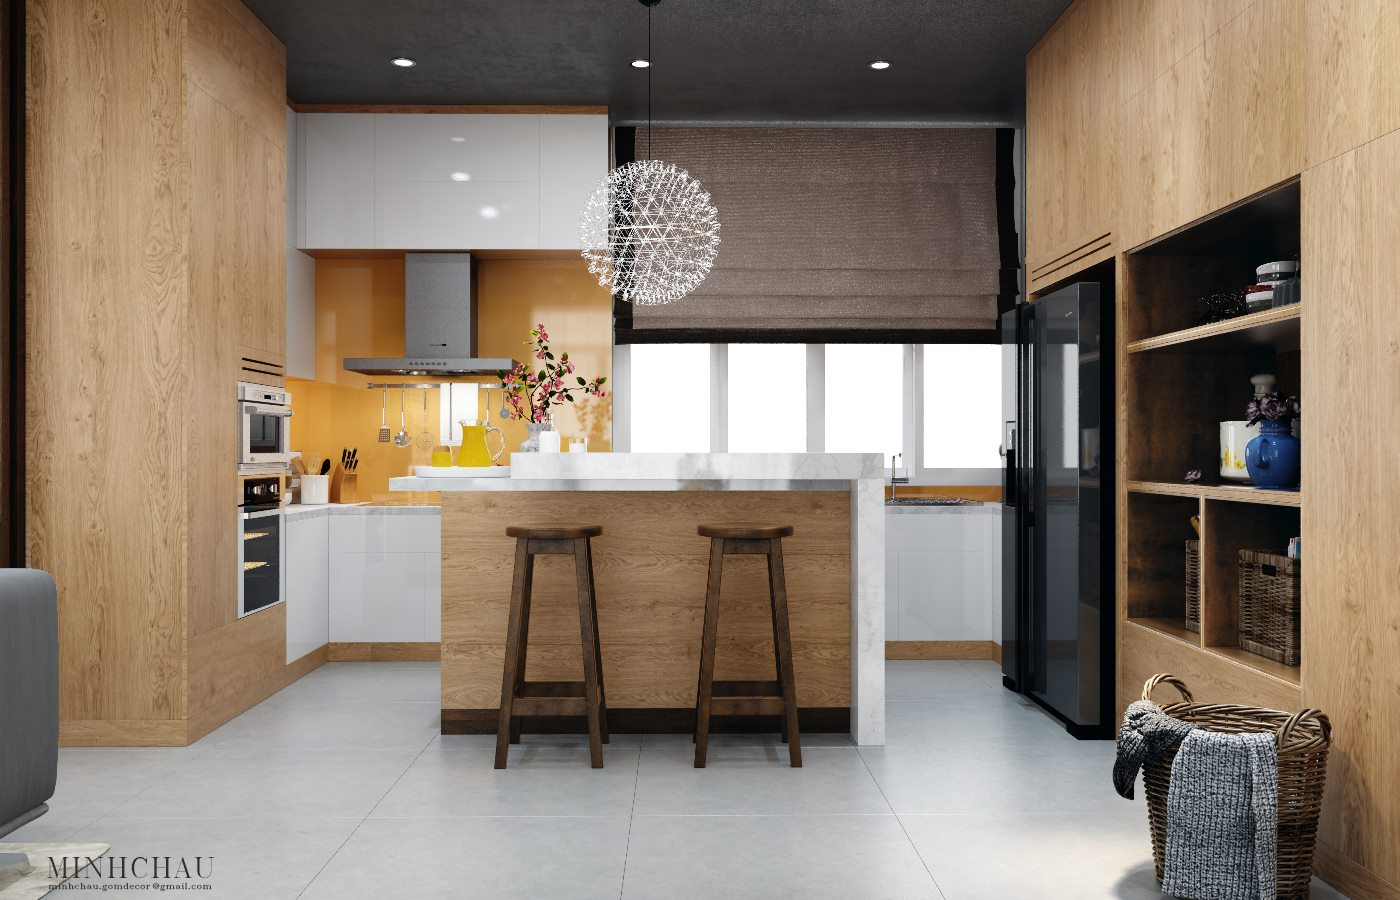 Accent Designs Modern Kitchen Designs With Wooden Accent Decor Brings A